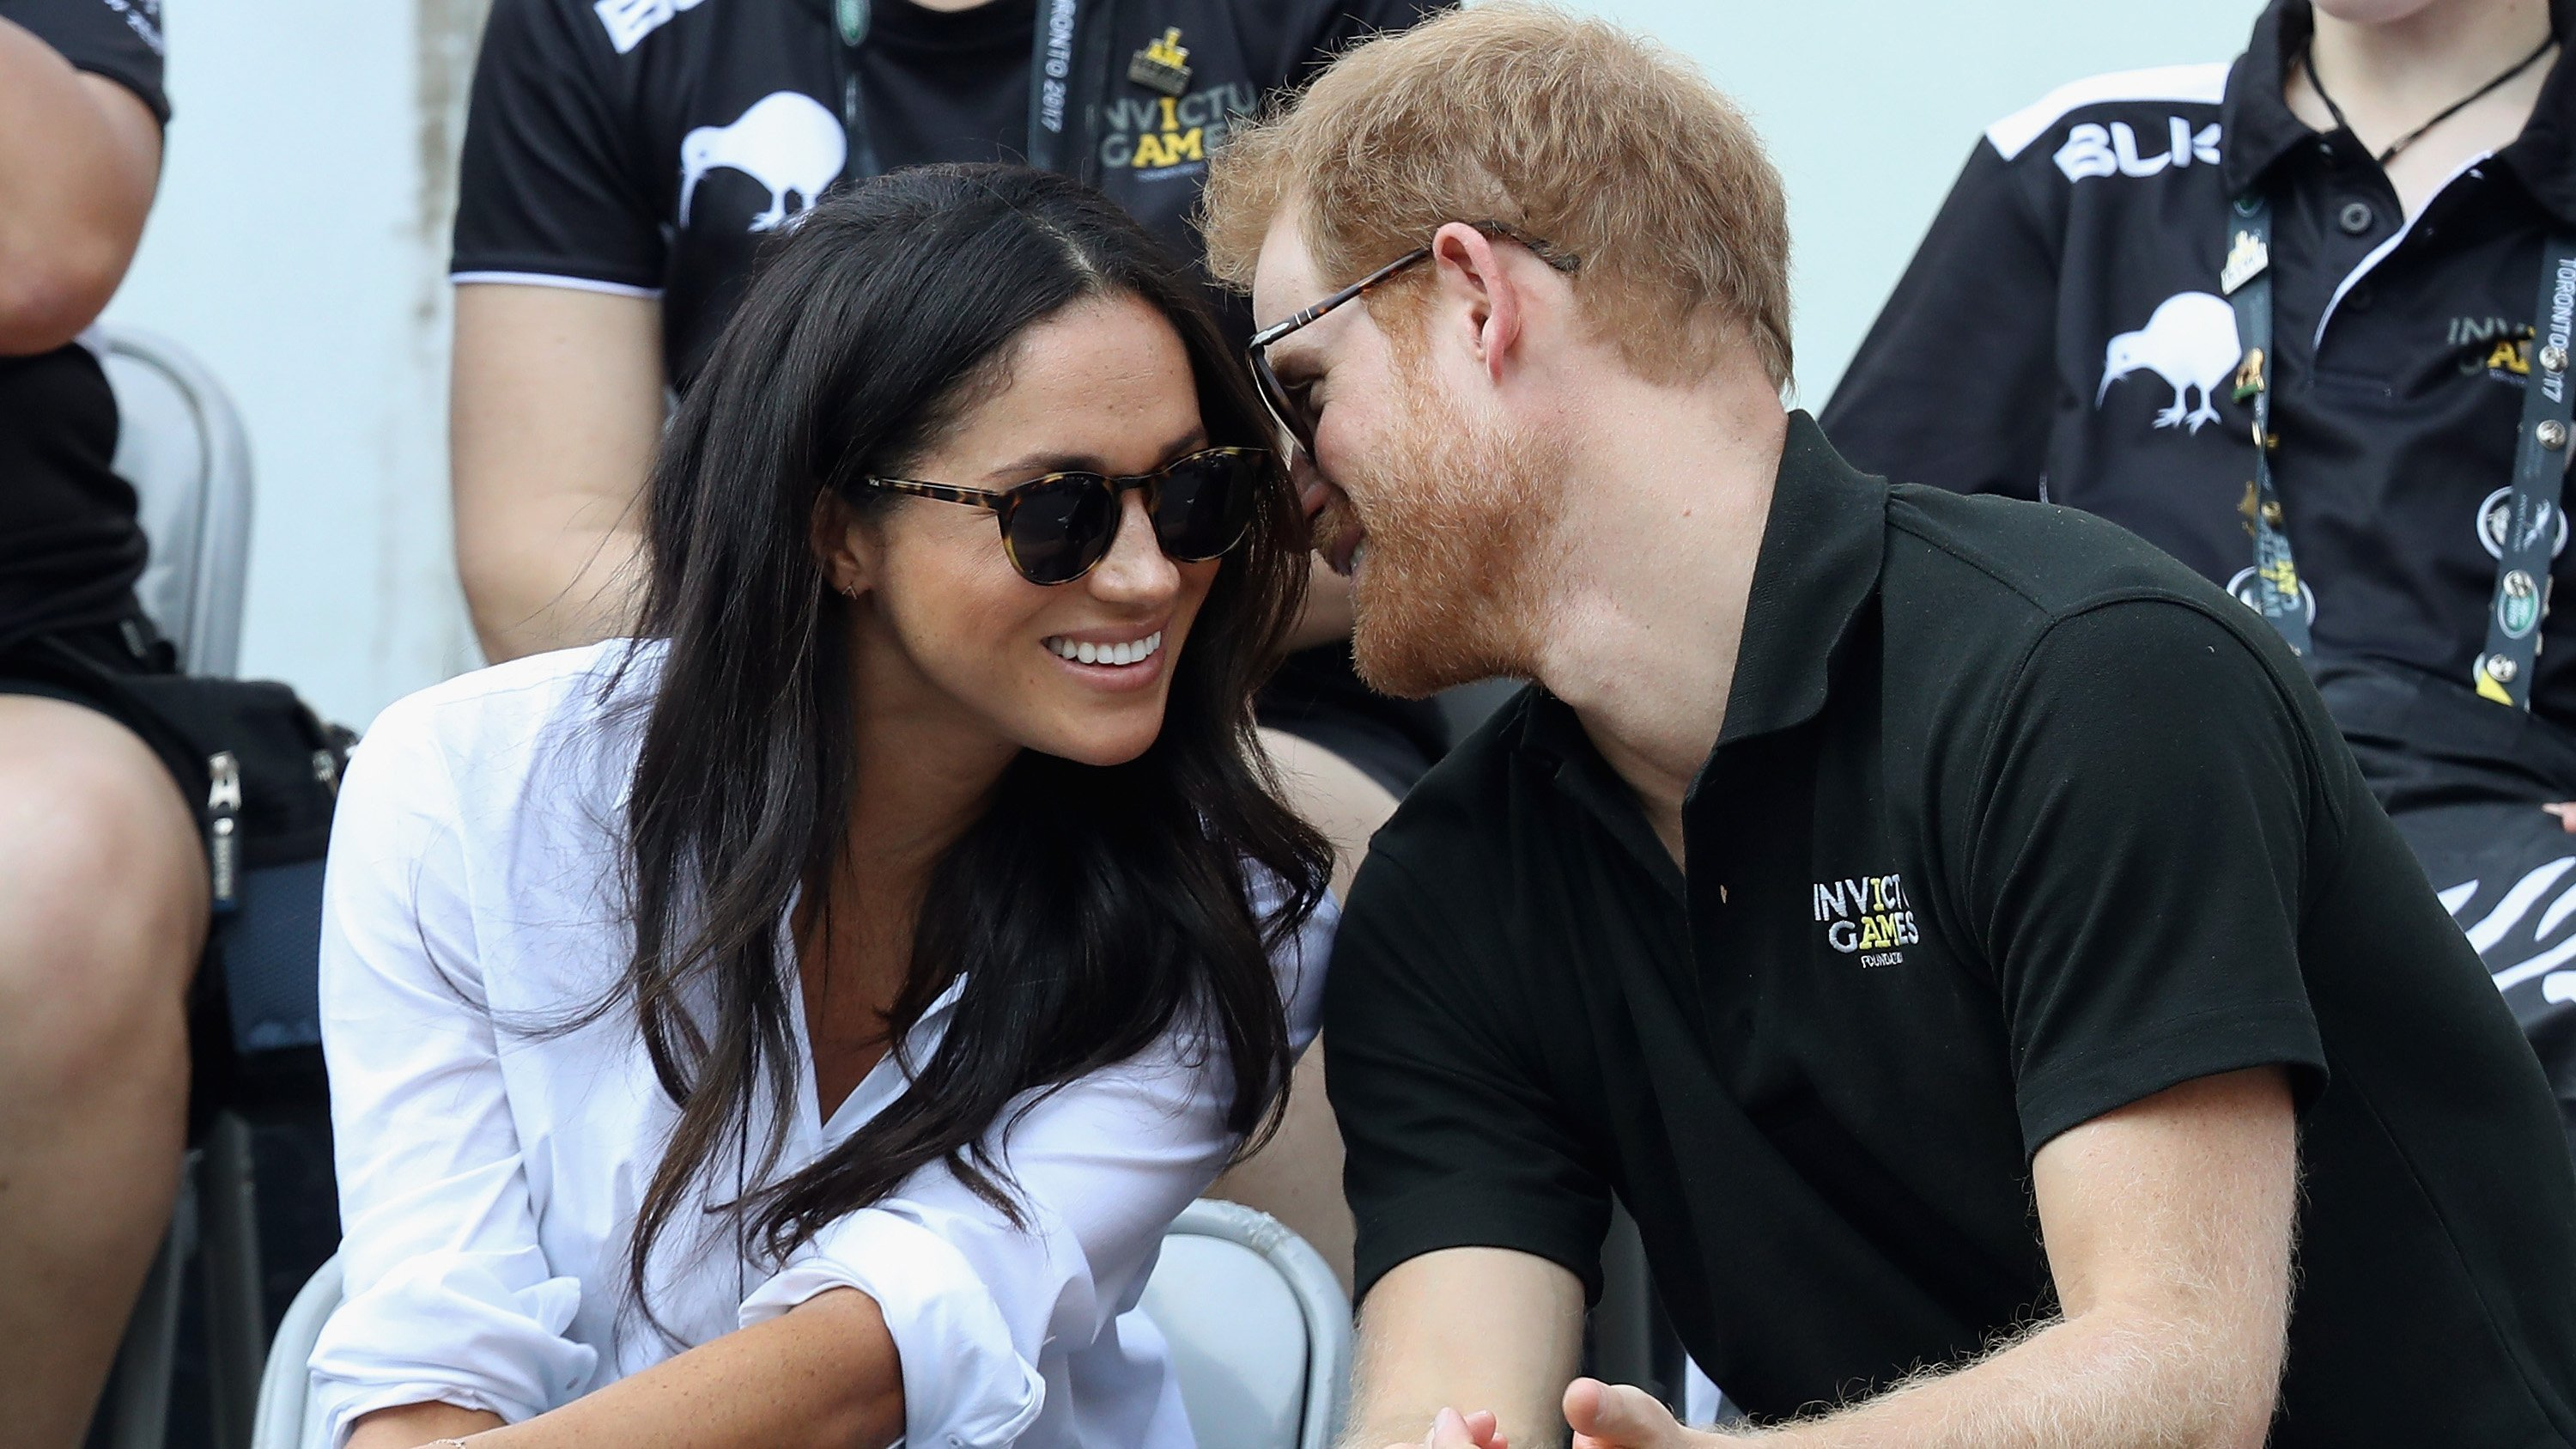 Meghan Markle, an American mixed-race divorcée with an unusual family situation, has been the subject of online abuse and criticism during her engagement to Prince Harry.